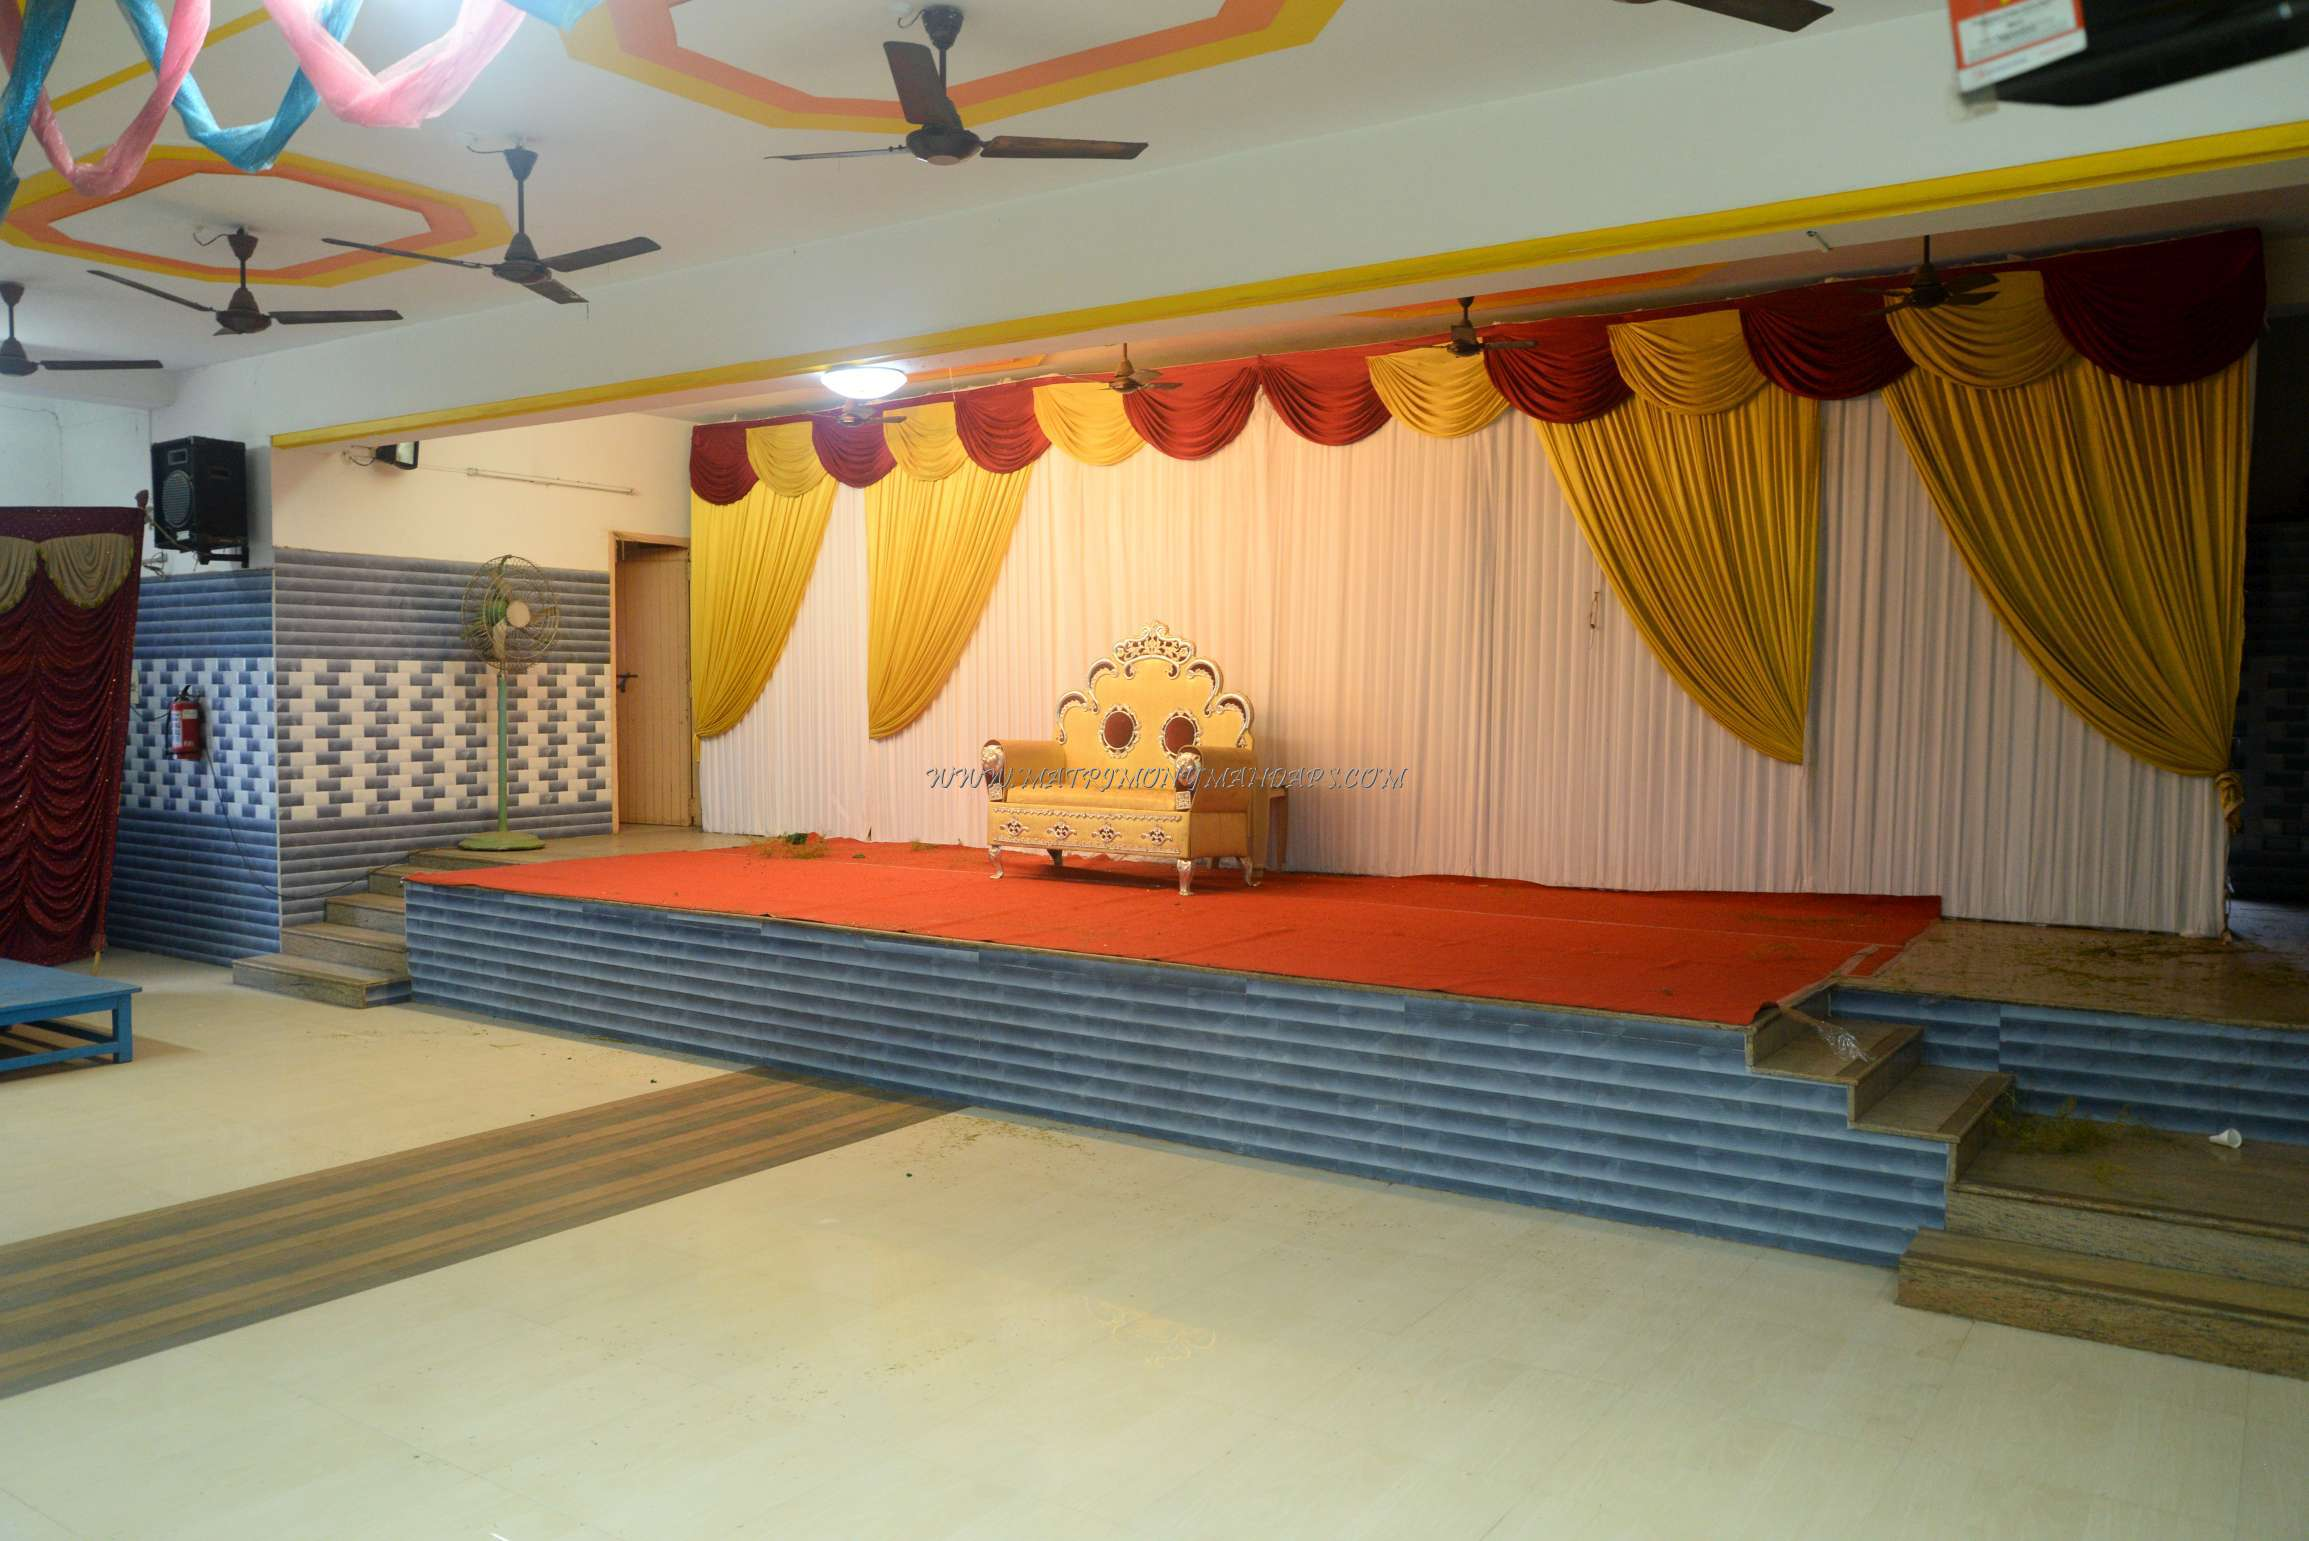 Find the availability of the Kamarajar Thirumana Maligai in Ayanavaram, Chennai and avail special offers